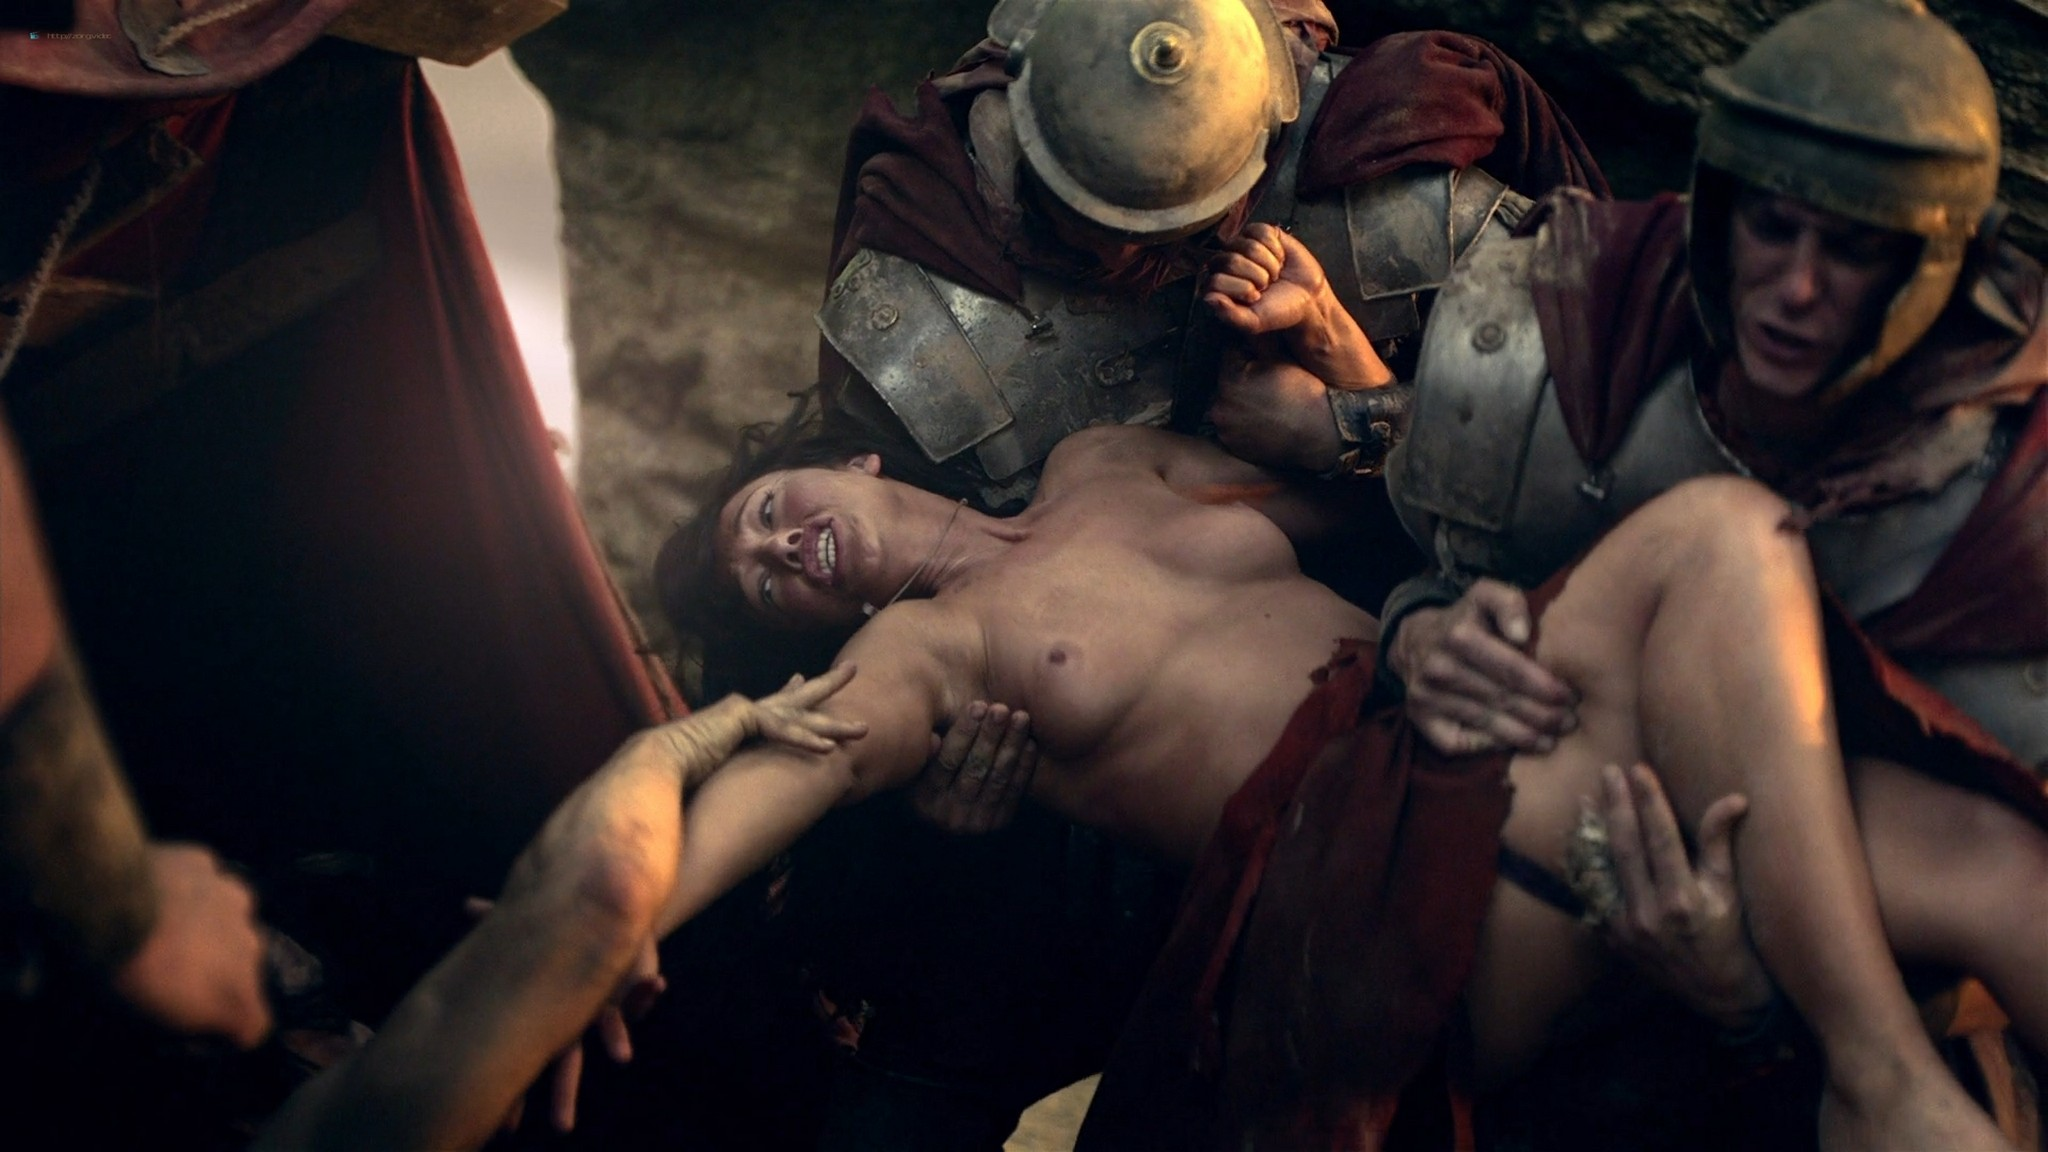 Viva Bianca nude full frontal Erin Cummings and others nude - Spartacus -The Red Serpent (2010) HD 1080p BluRay (7)